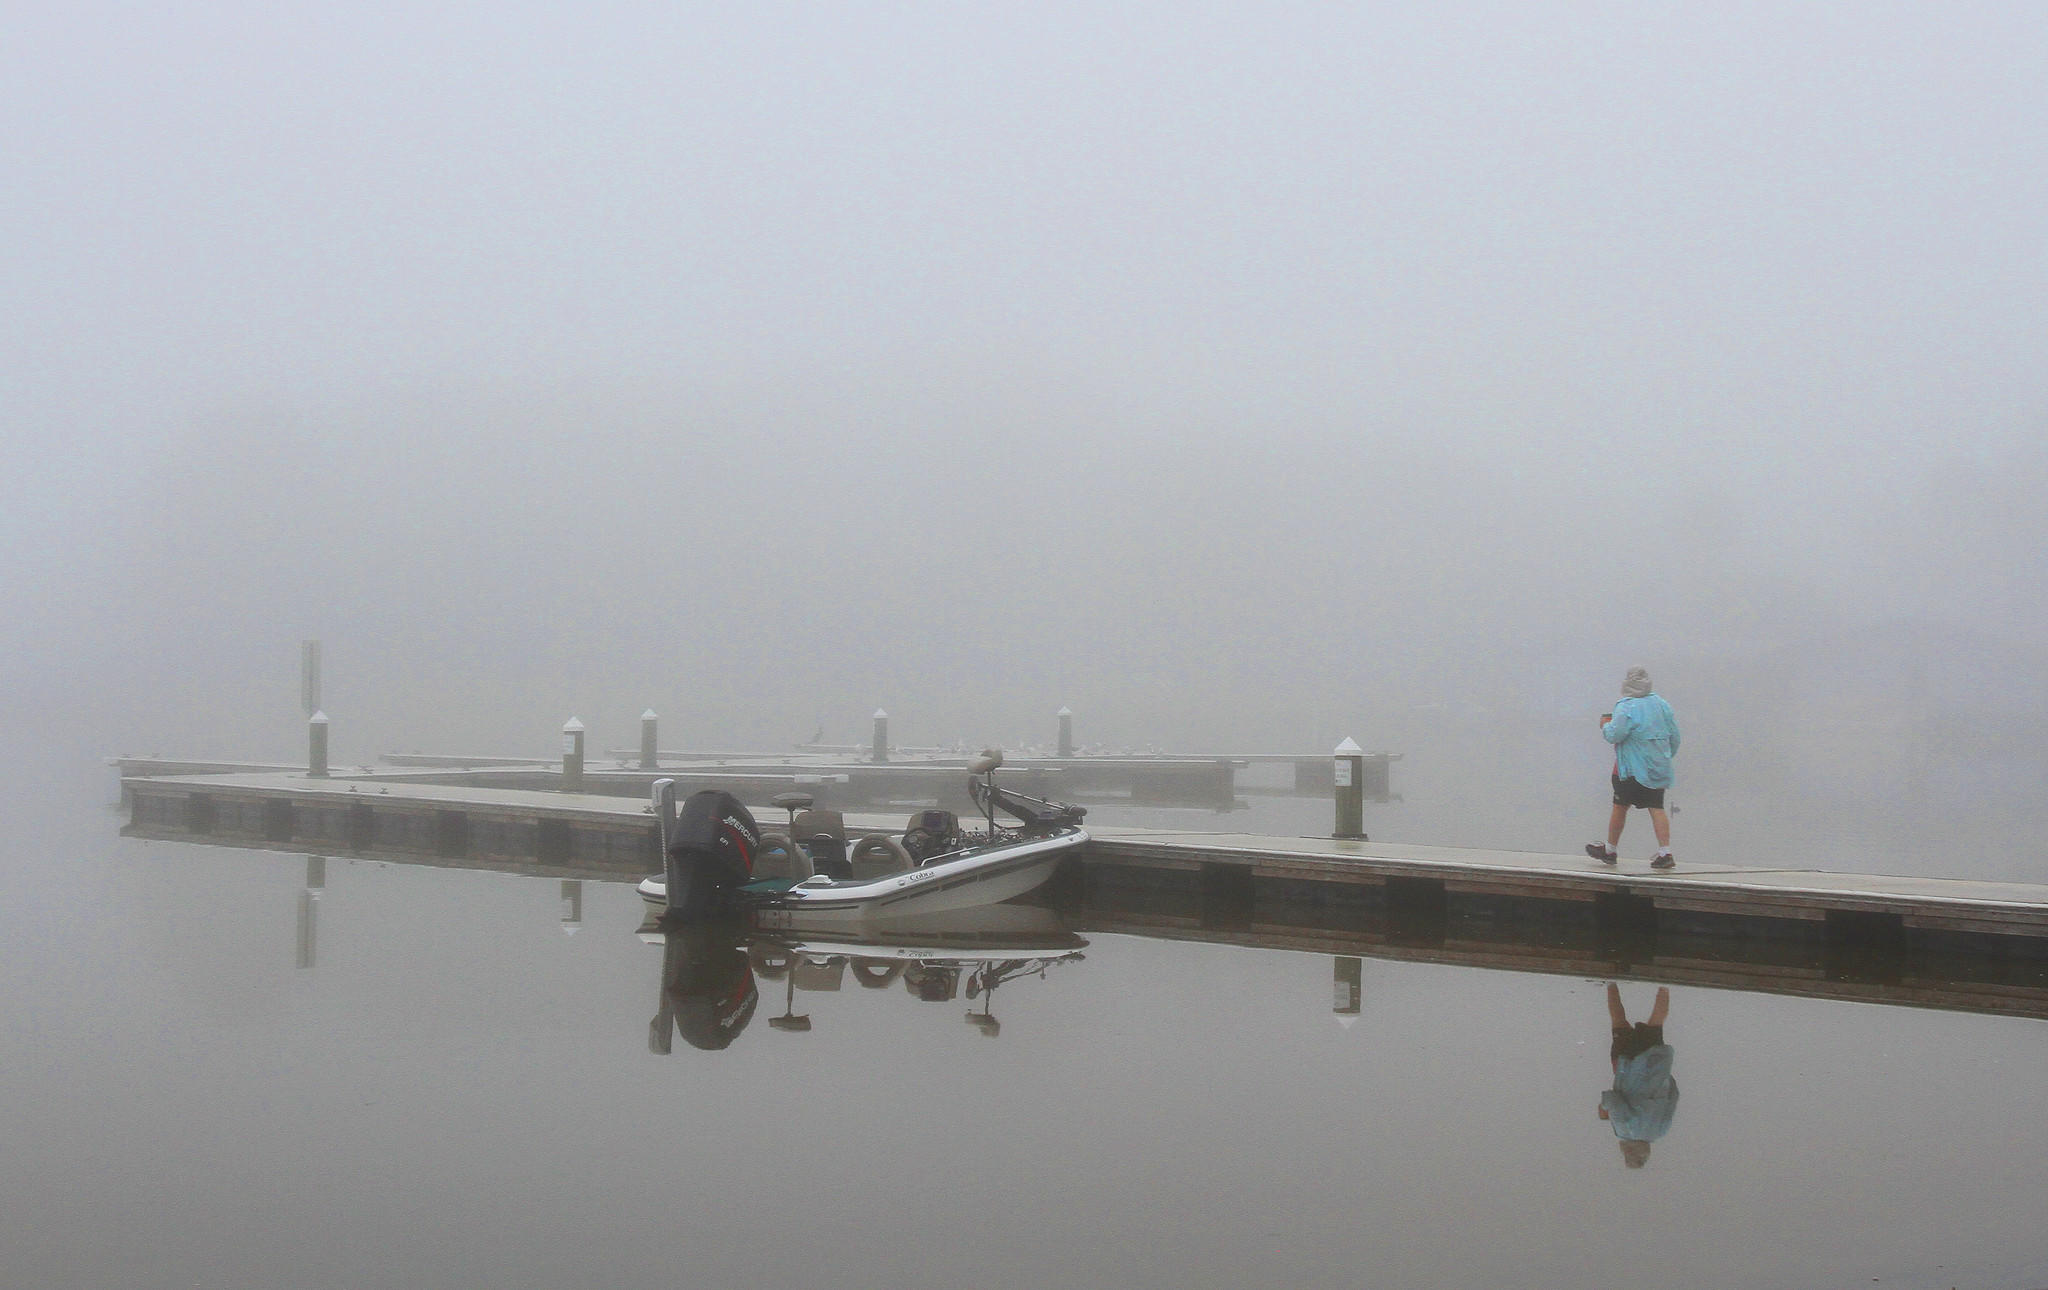 A fisherman prepares to motor into the fog on Lake Dora in Mount Dora on Tuesday, February 4, 2014.